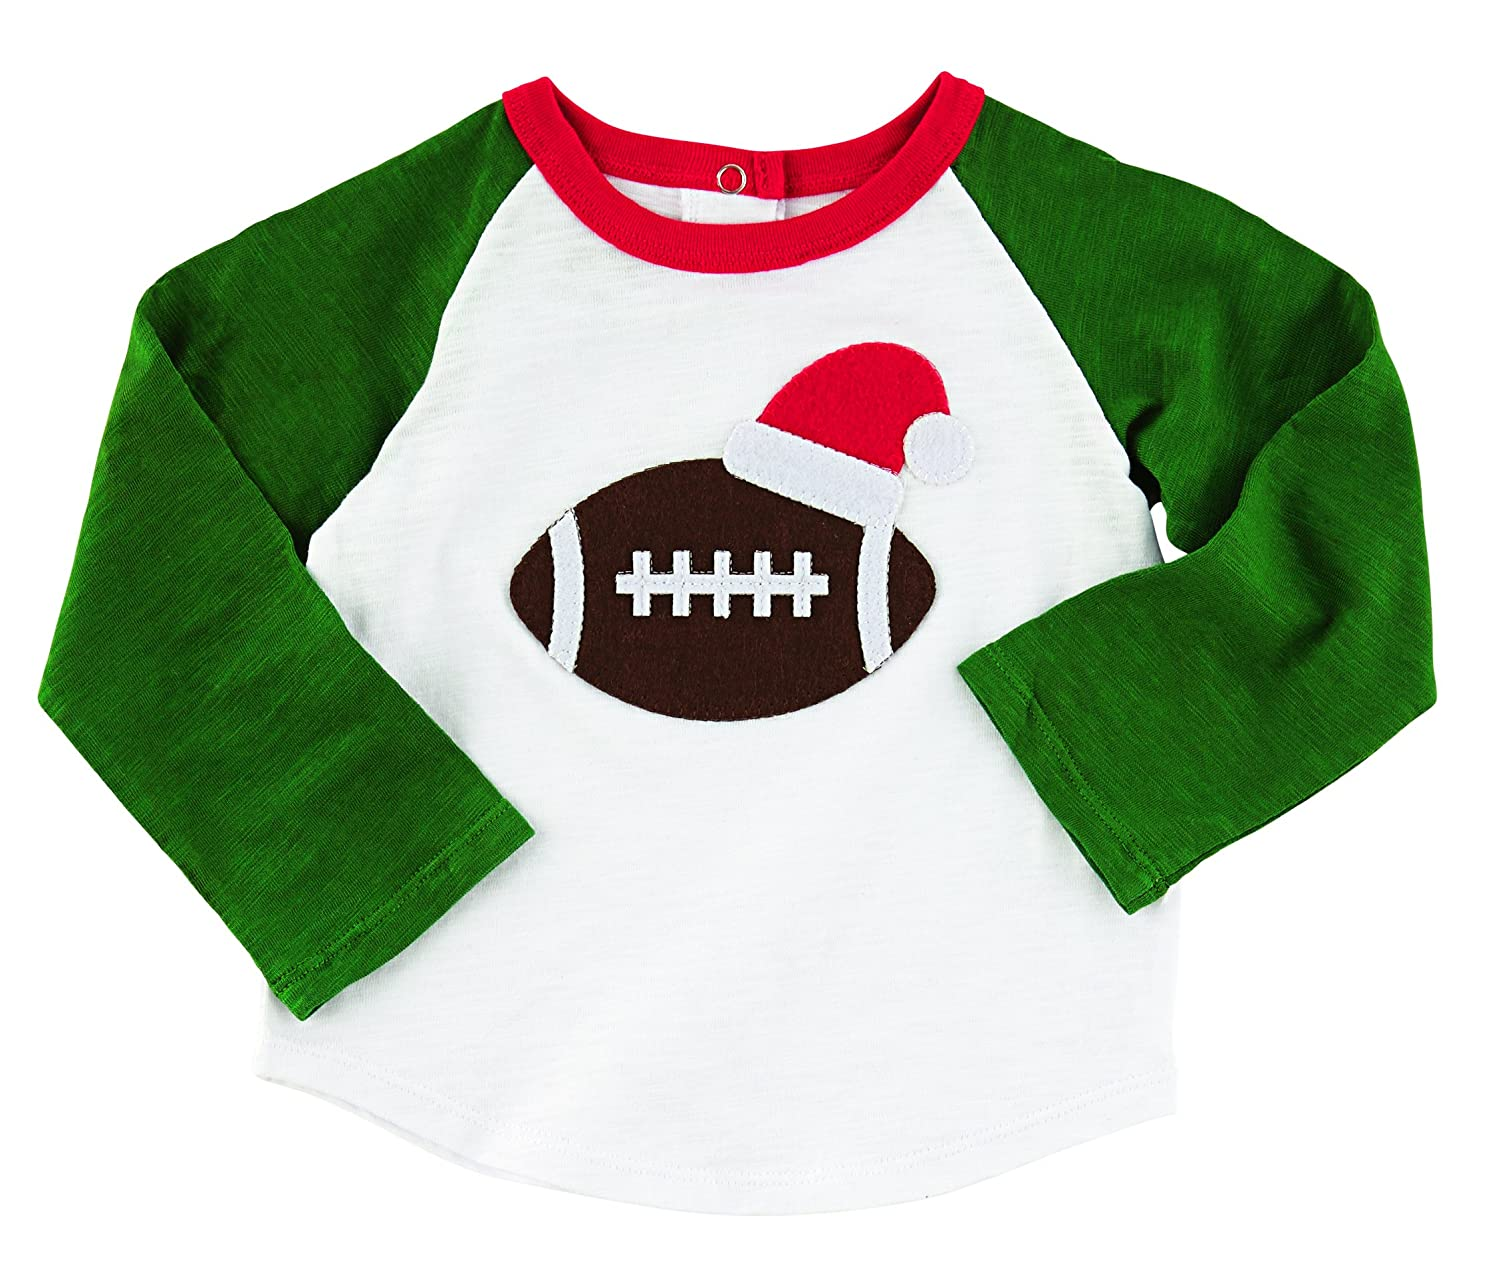 Amazon.com: Mud Pie Little Boys' Christmas Football T-Shirt: Clothing